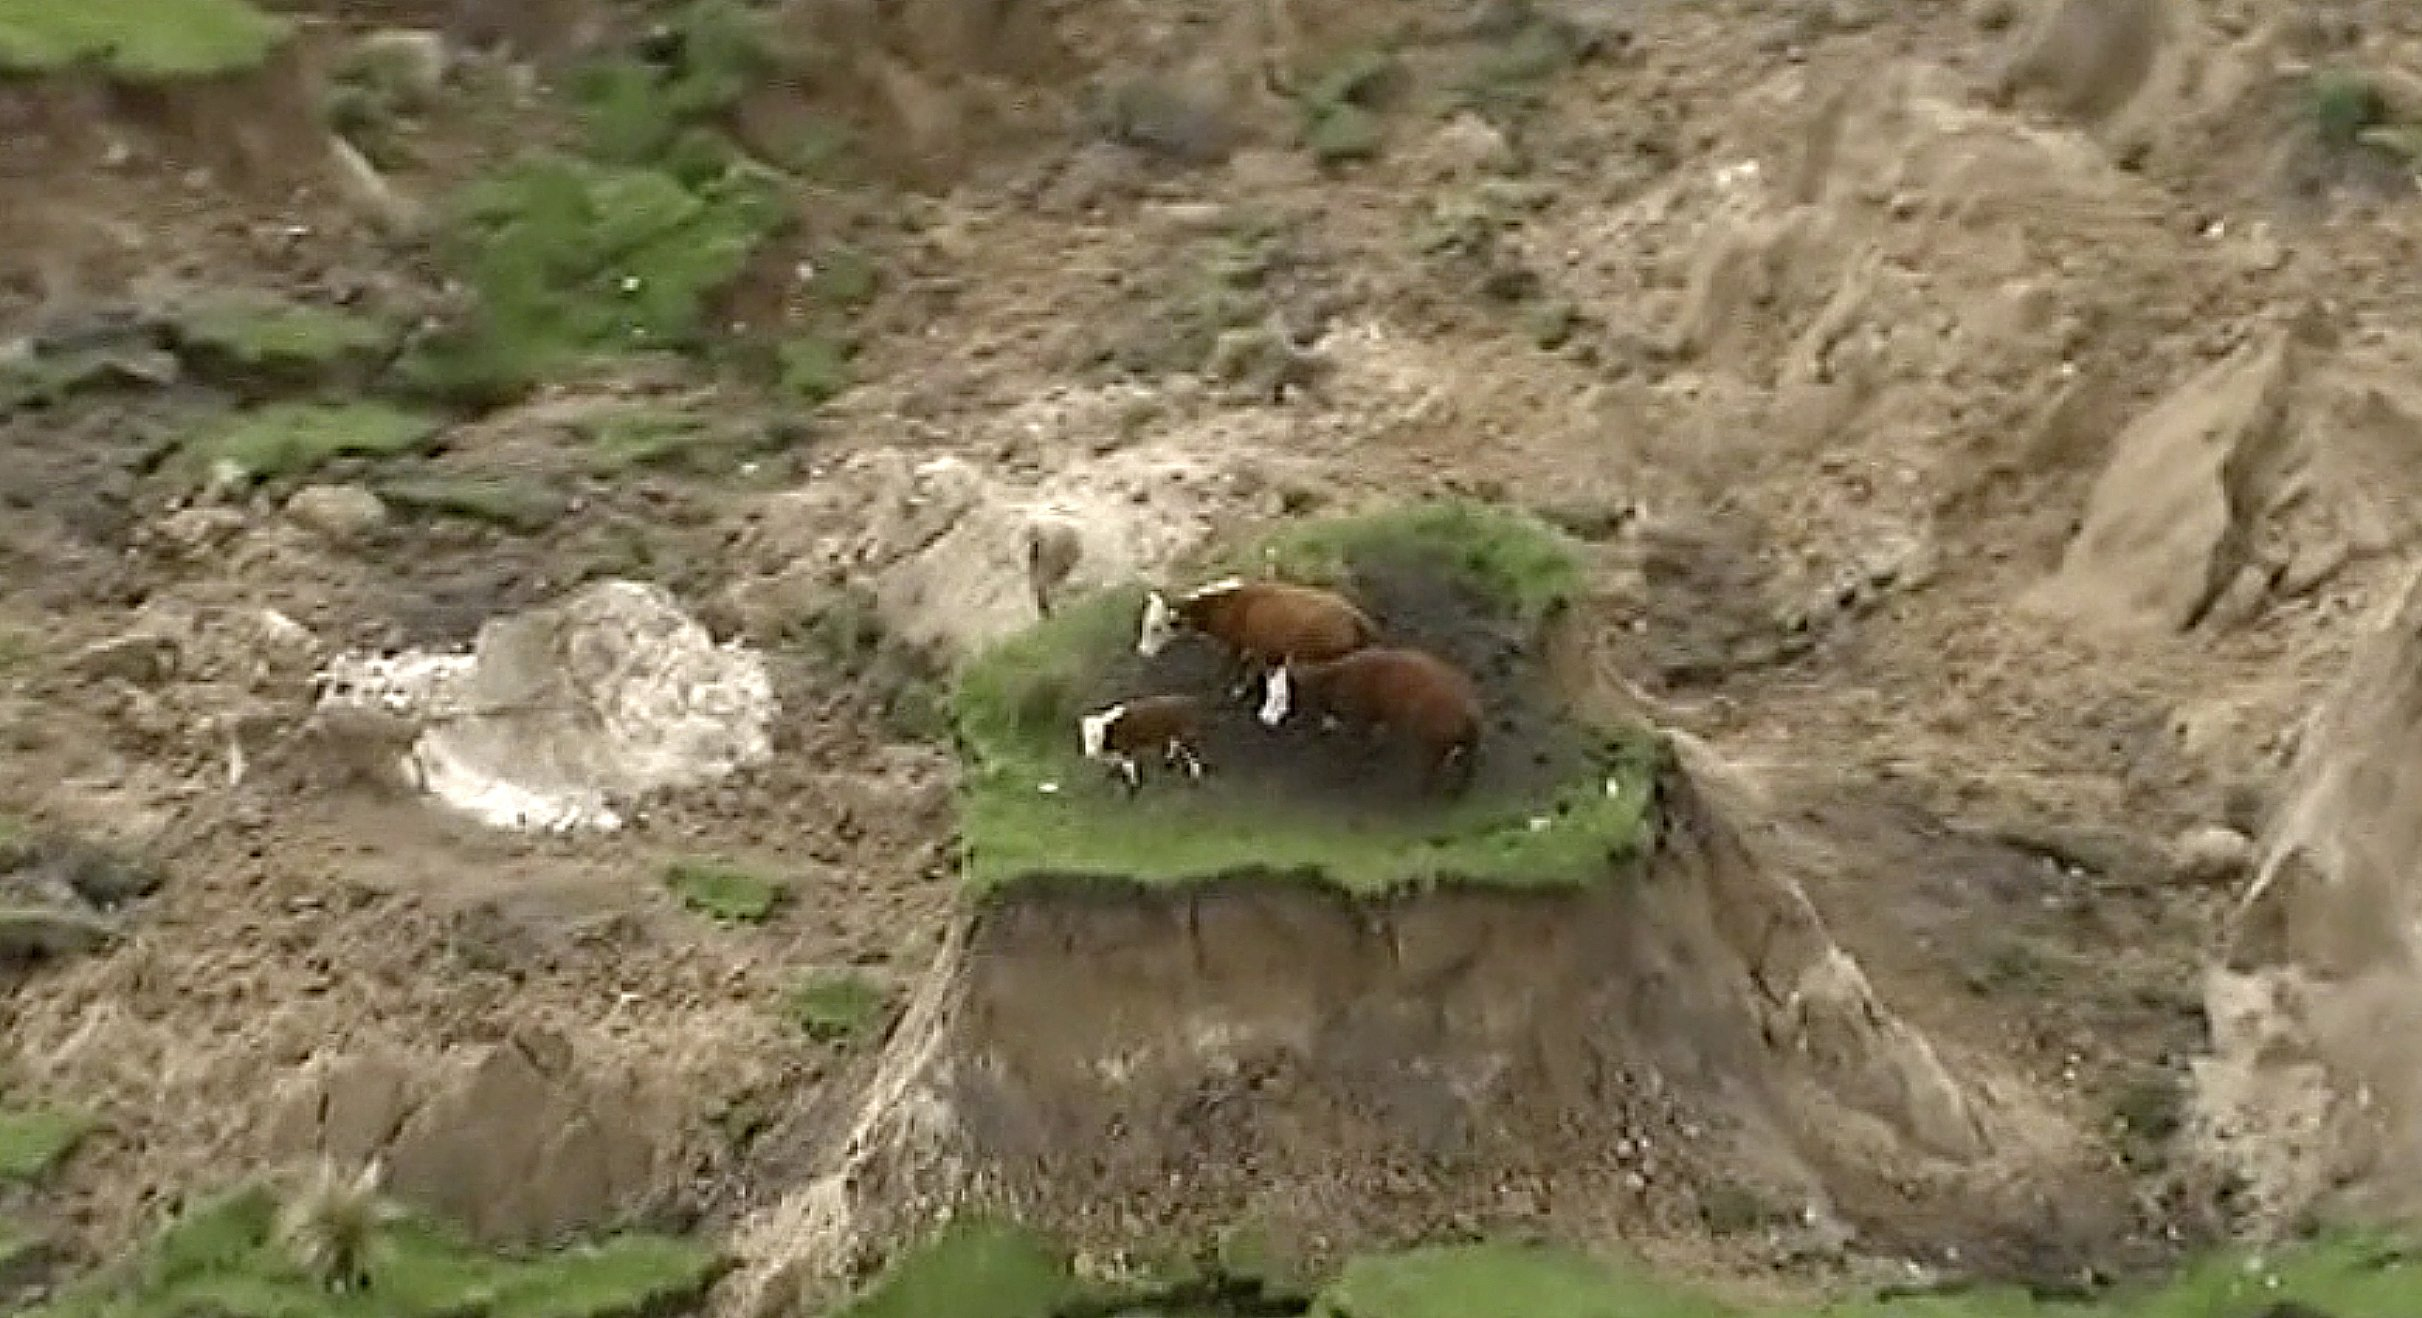 Moooving on: Cows stranded by New Zealand quake are rescued